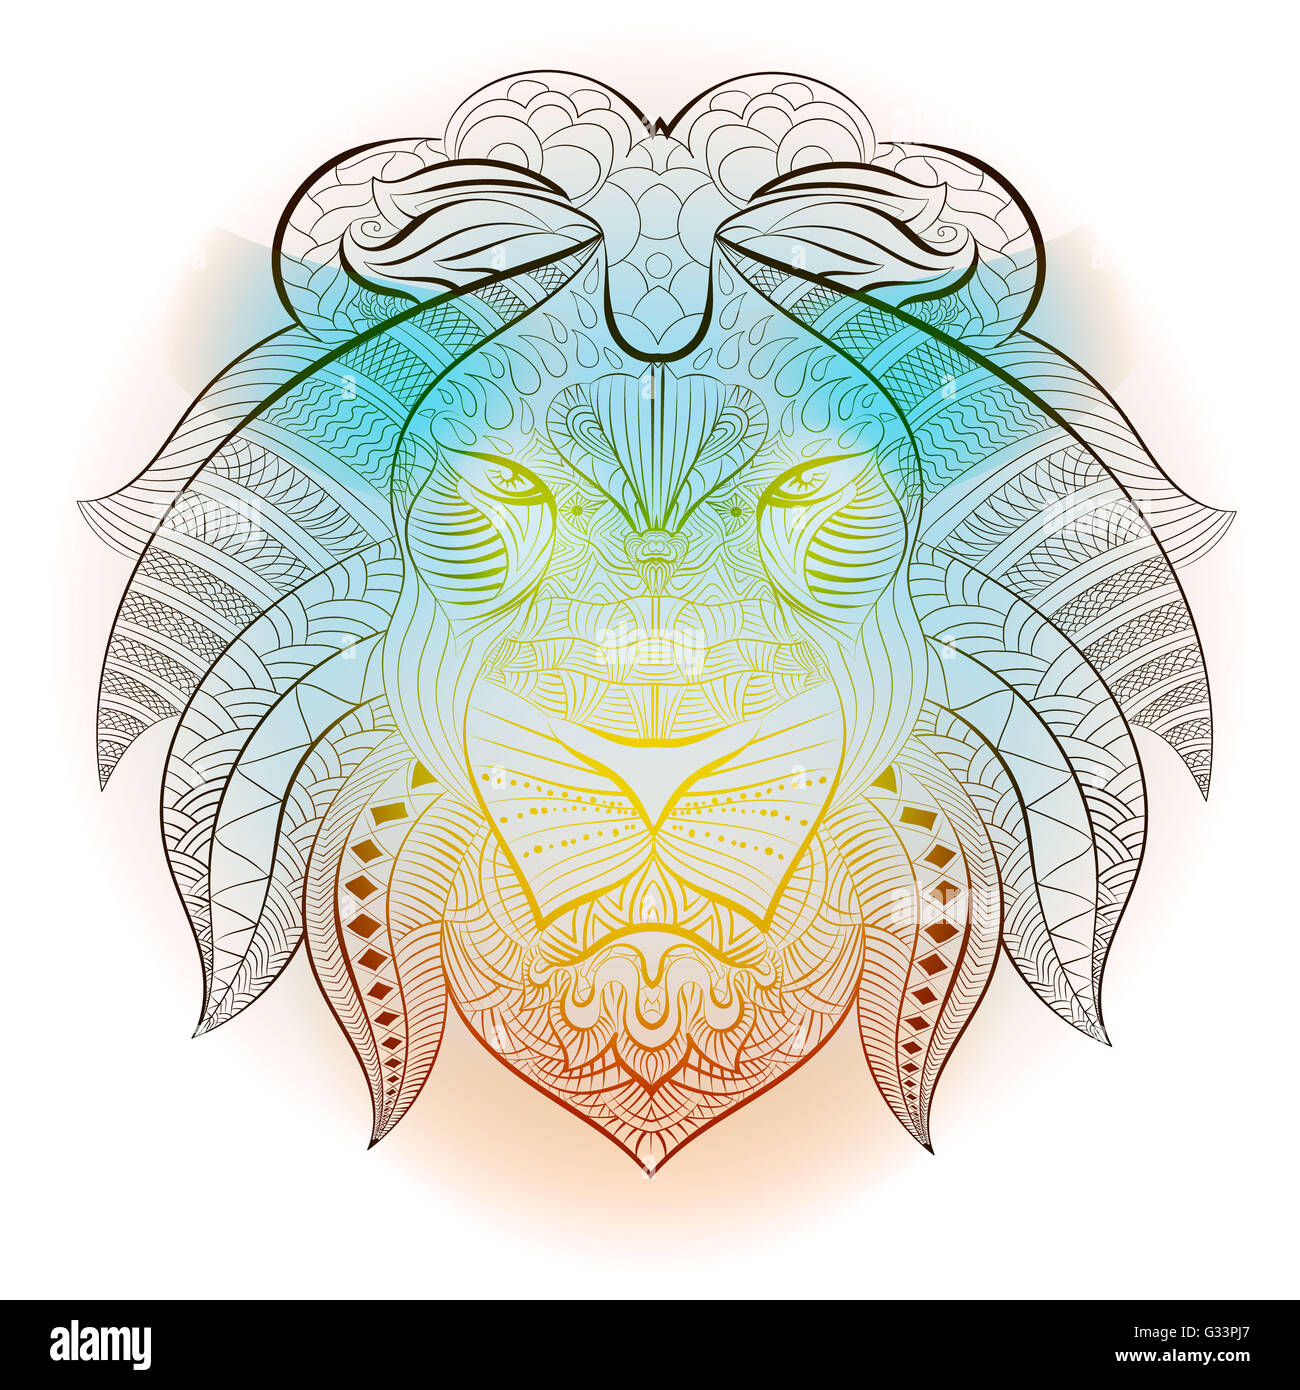 Ethnique Tribal Lion Animal Conception Et Dessin Tatouage Totem